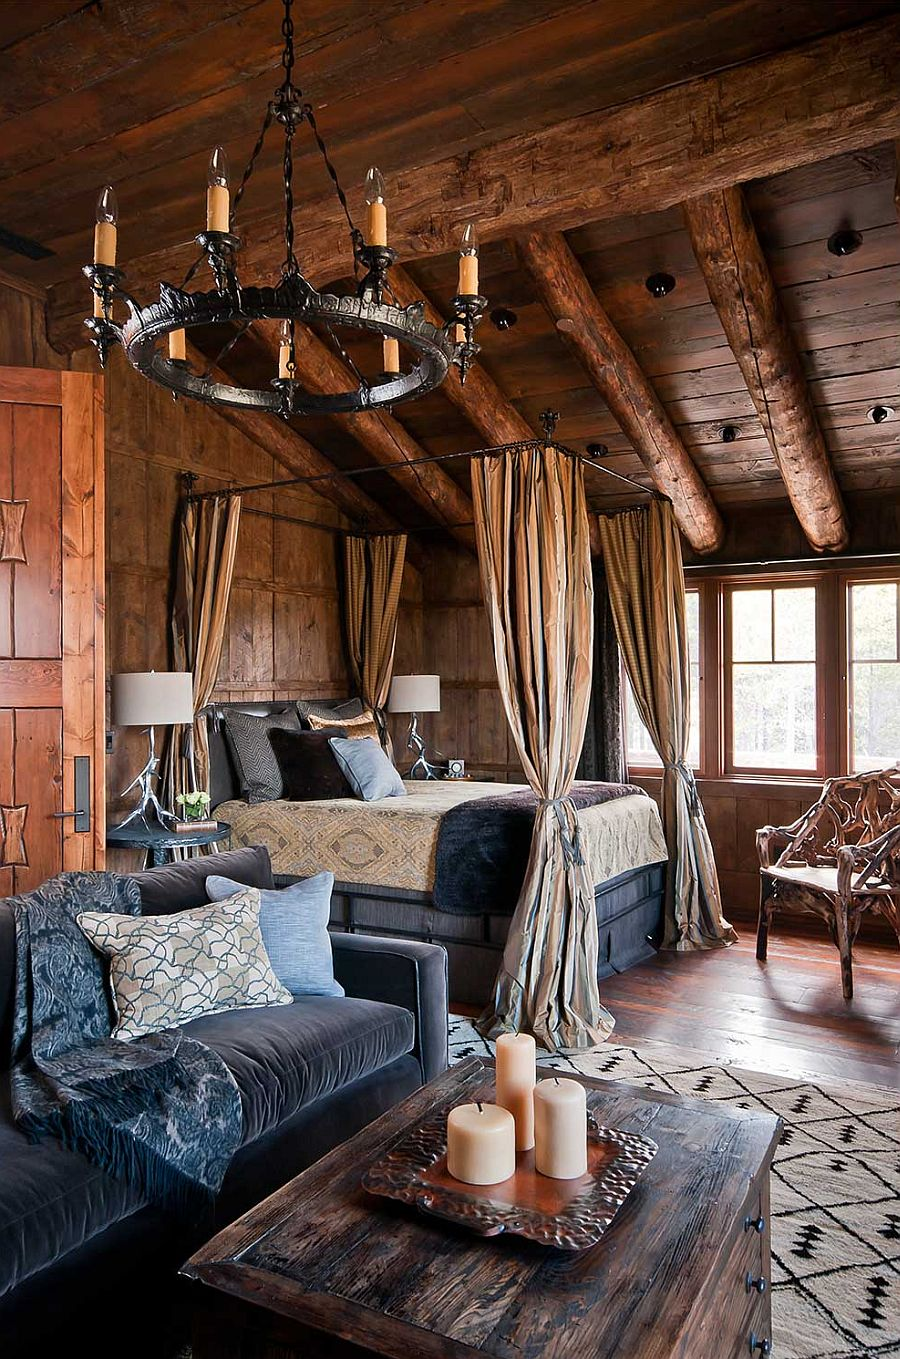 Dancing hearts picture perfect hillside escape in montana for Rustic lodge